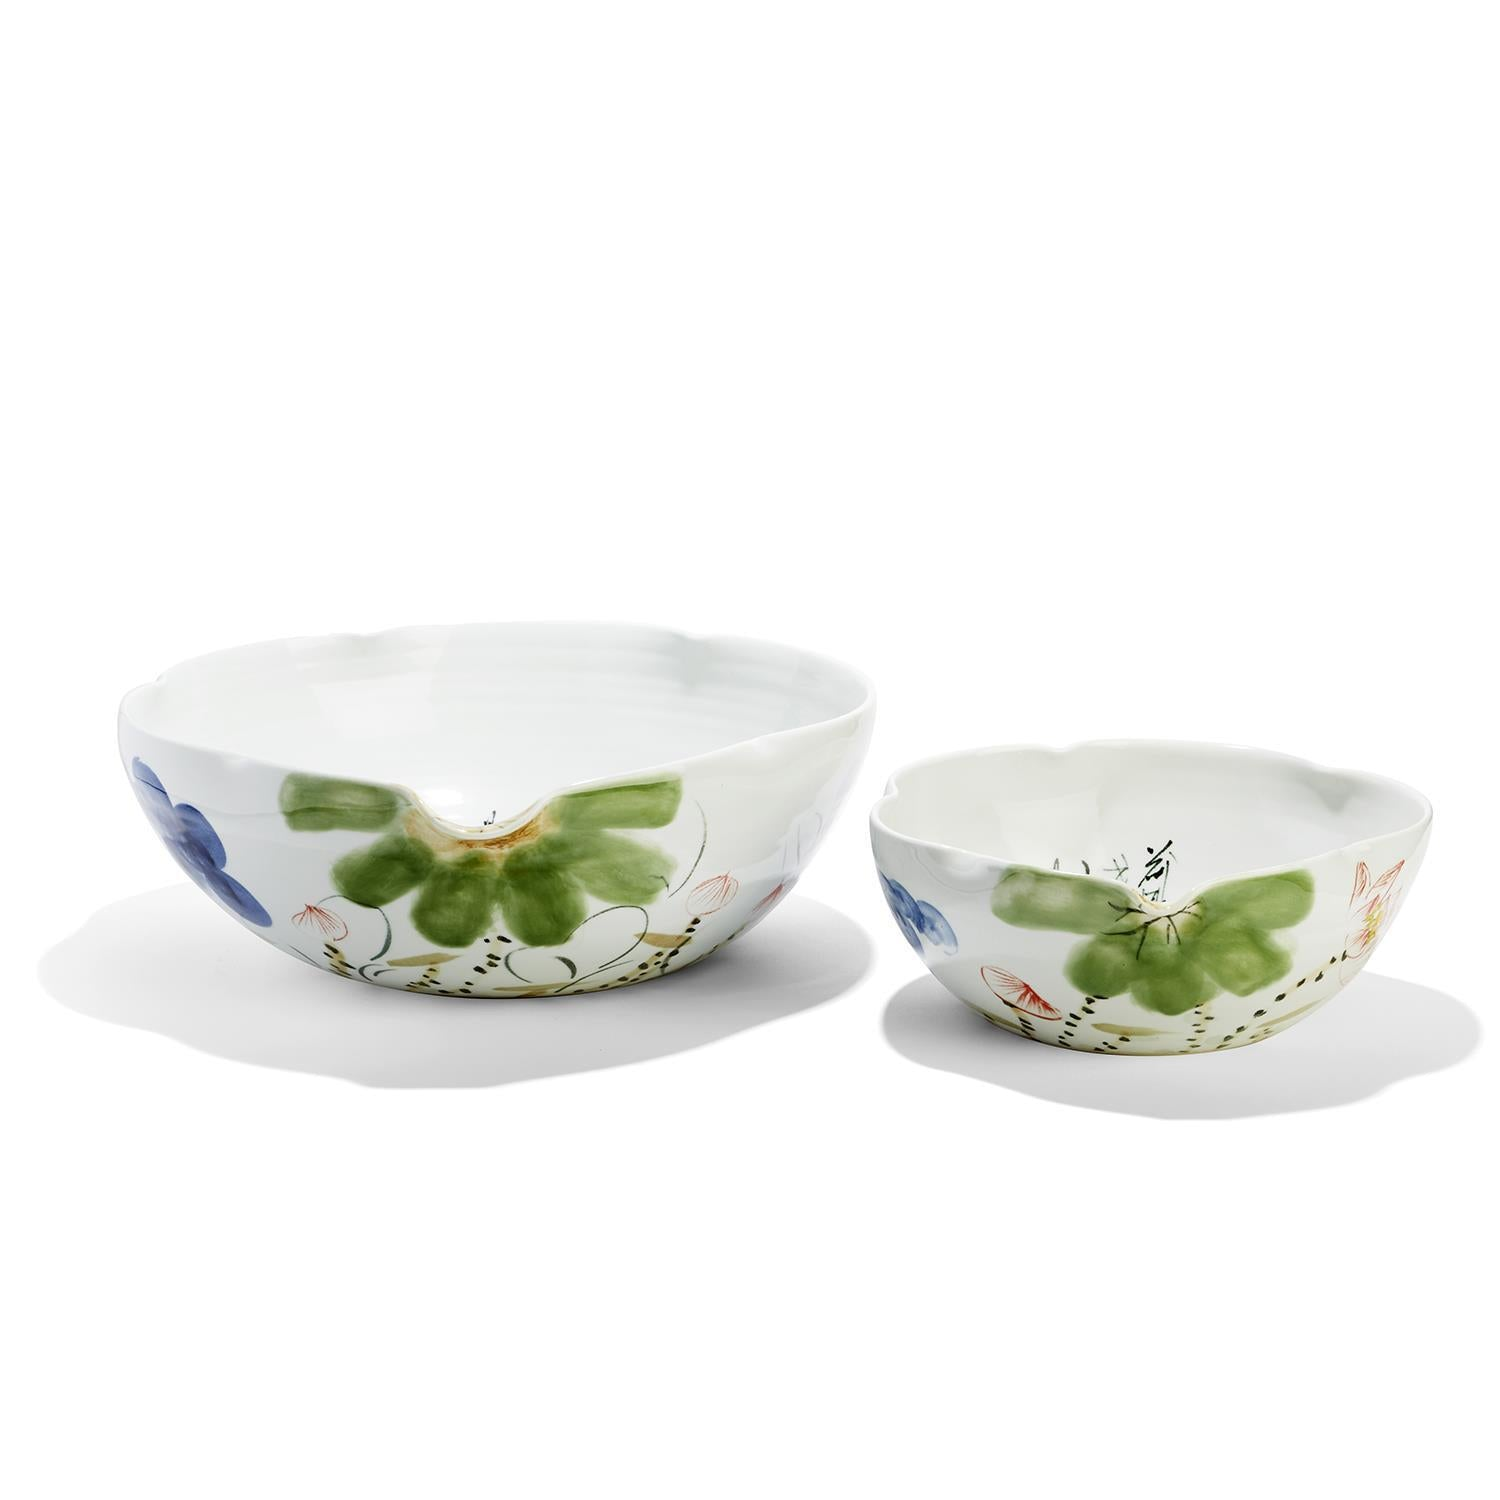 Tozai Home Japanese Blossoms S/2 Bowls